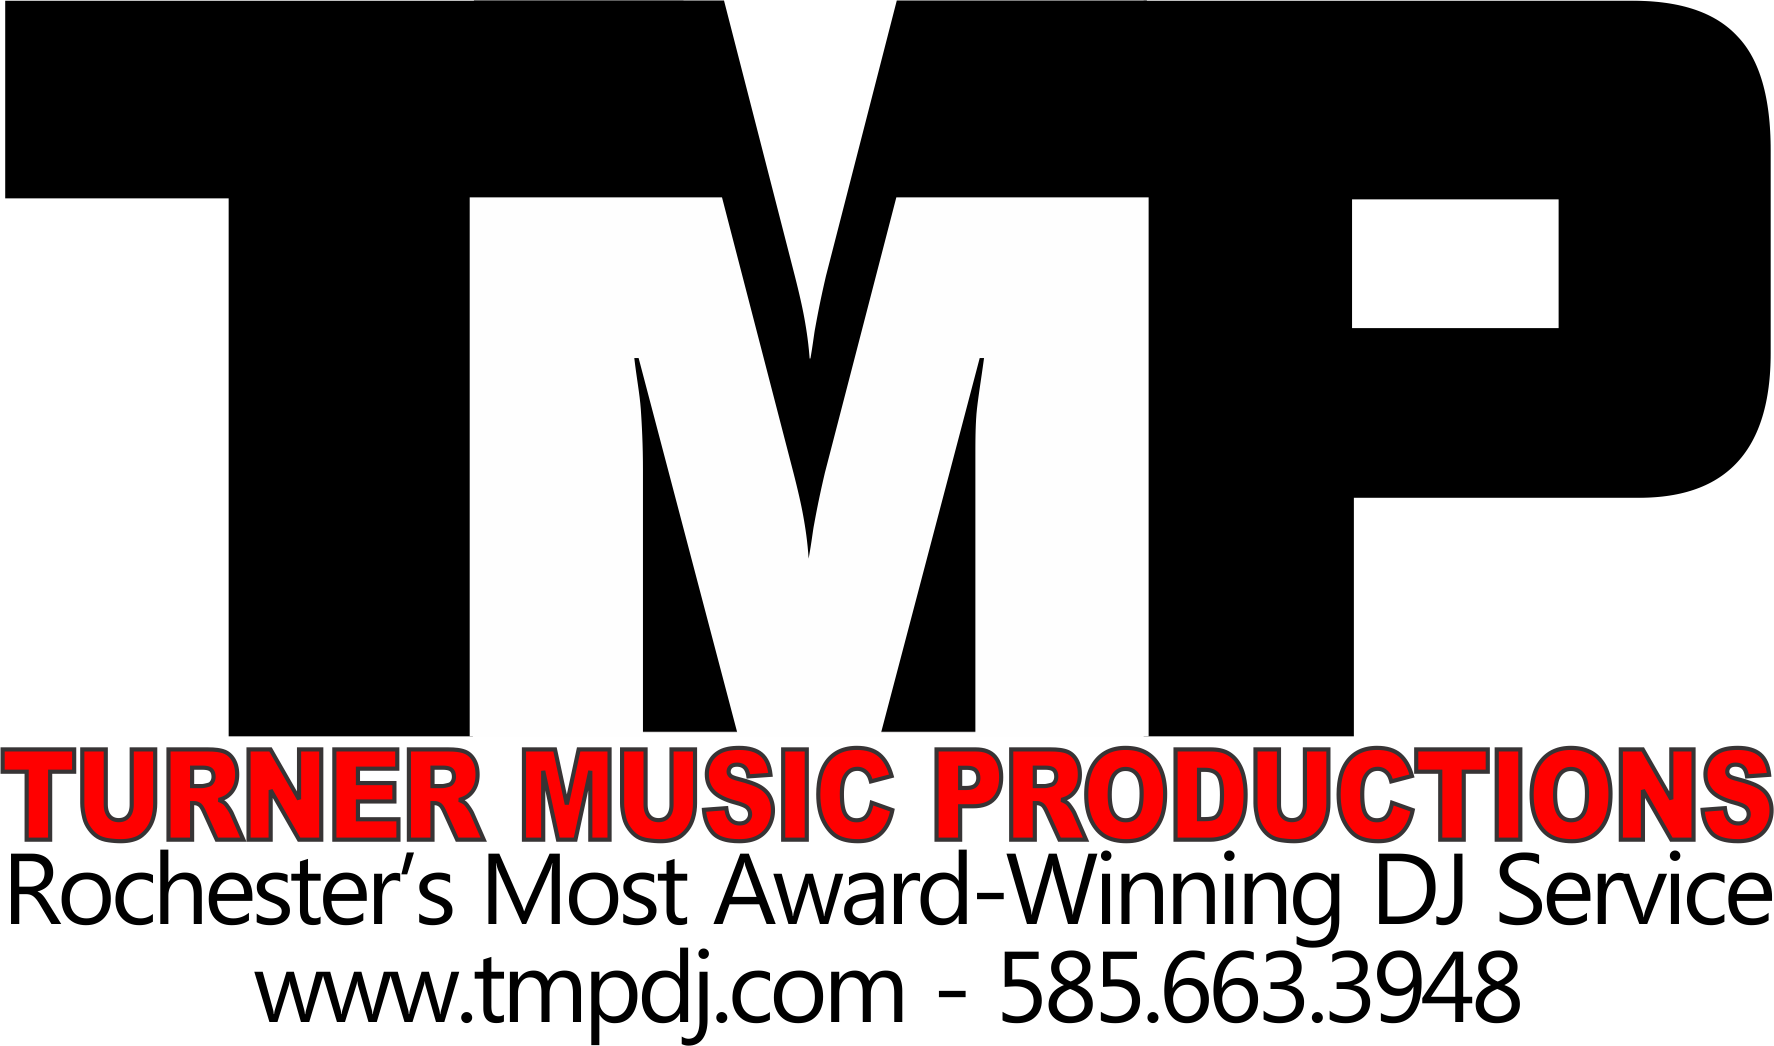 Turner Music Production